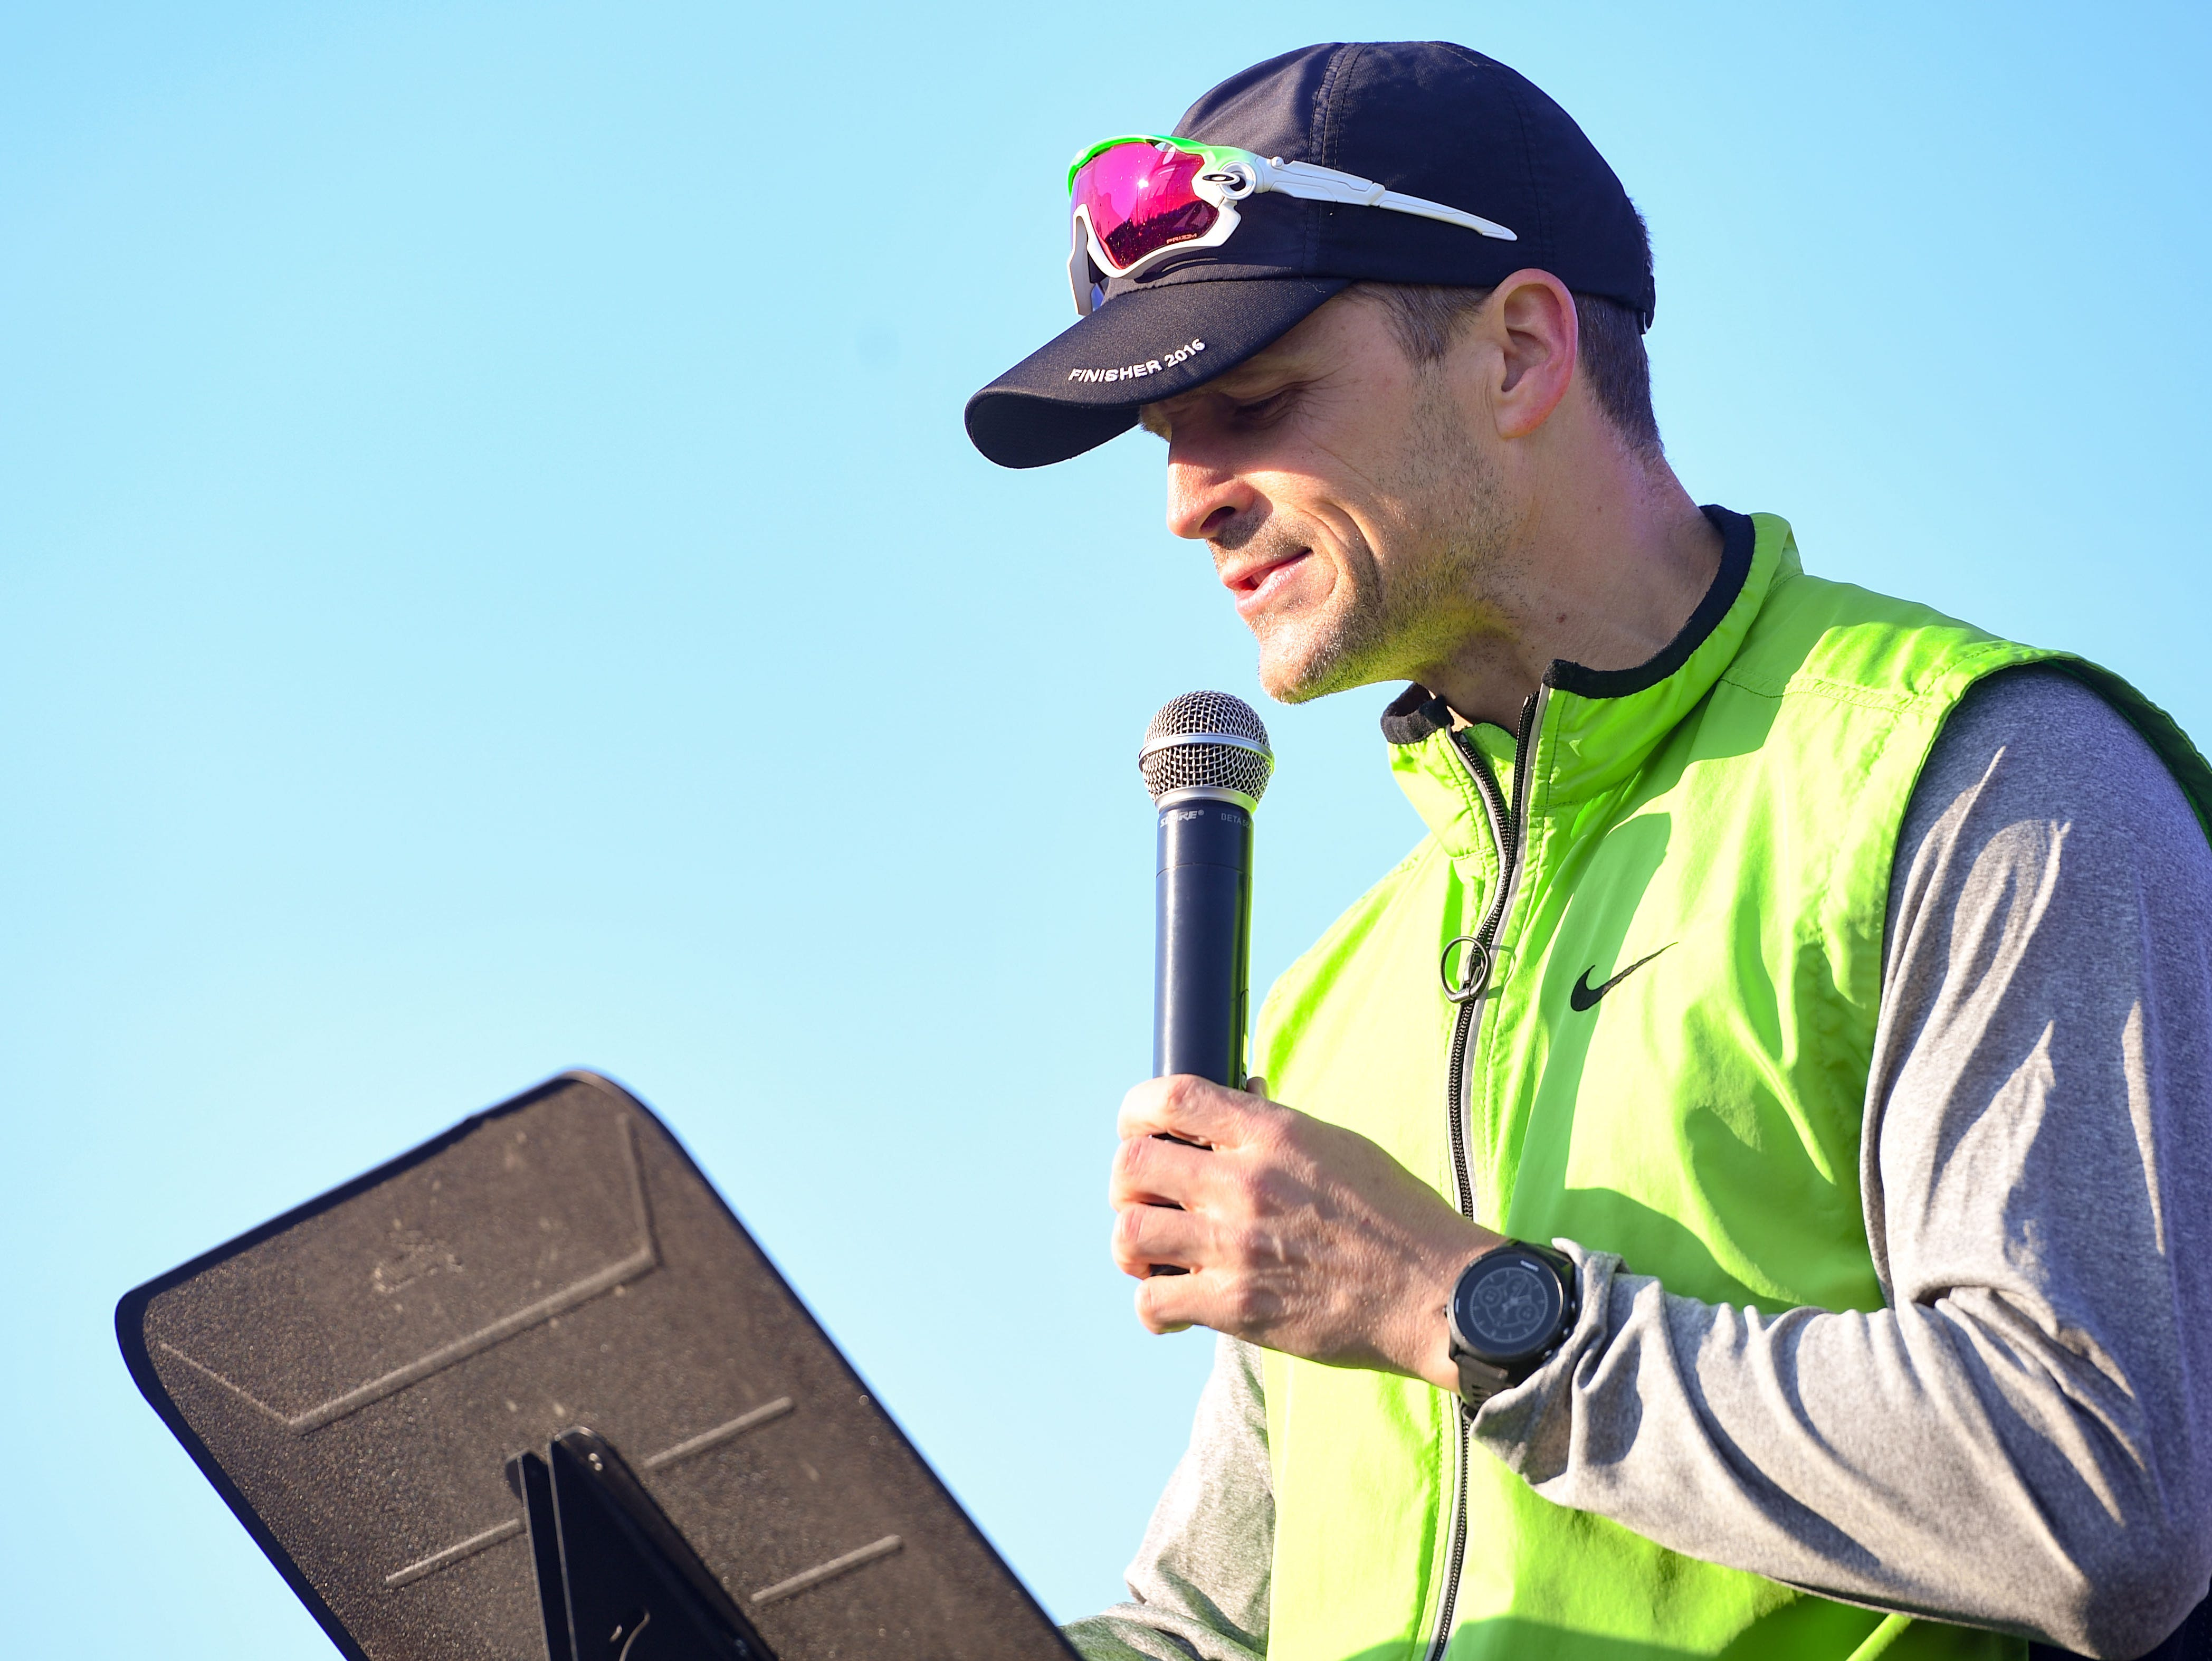 Mayor Paul TenHaken makes a proclamation before the start of the 31st Avera Health Race Against Cancer on Saturday morning, May 11, in Sioux Falls.